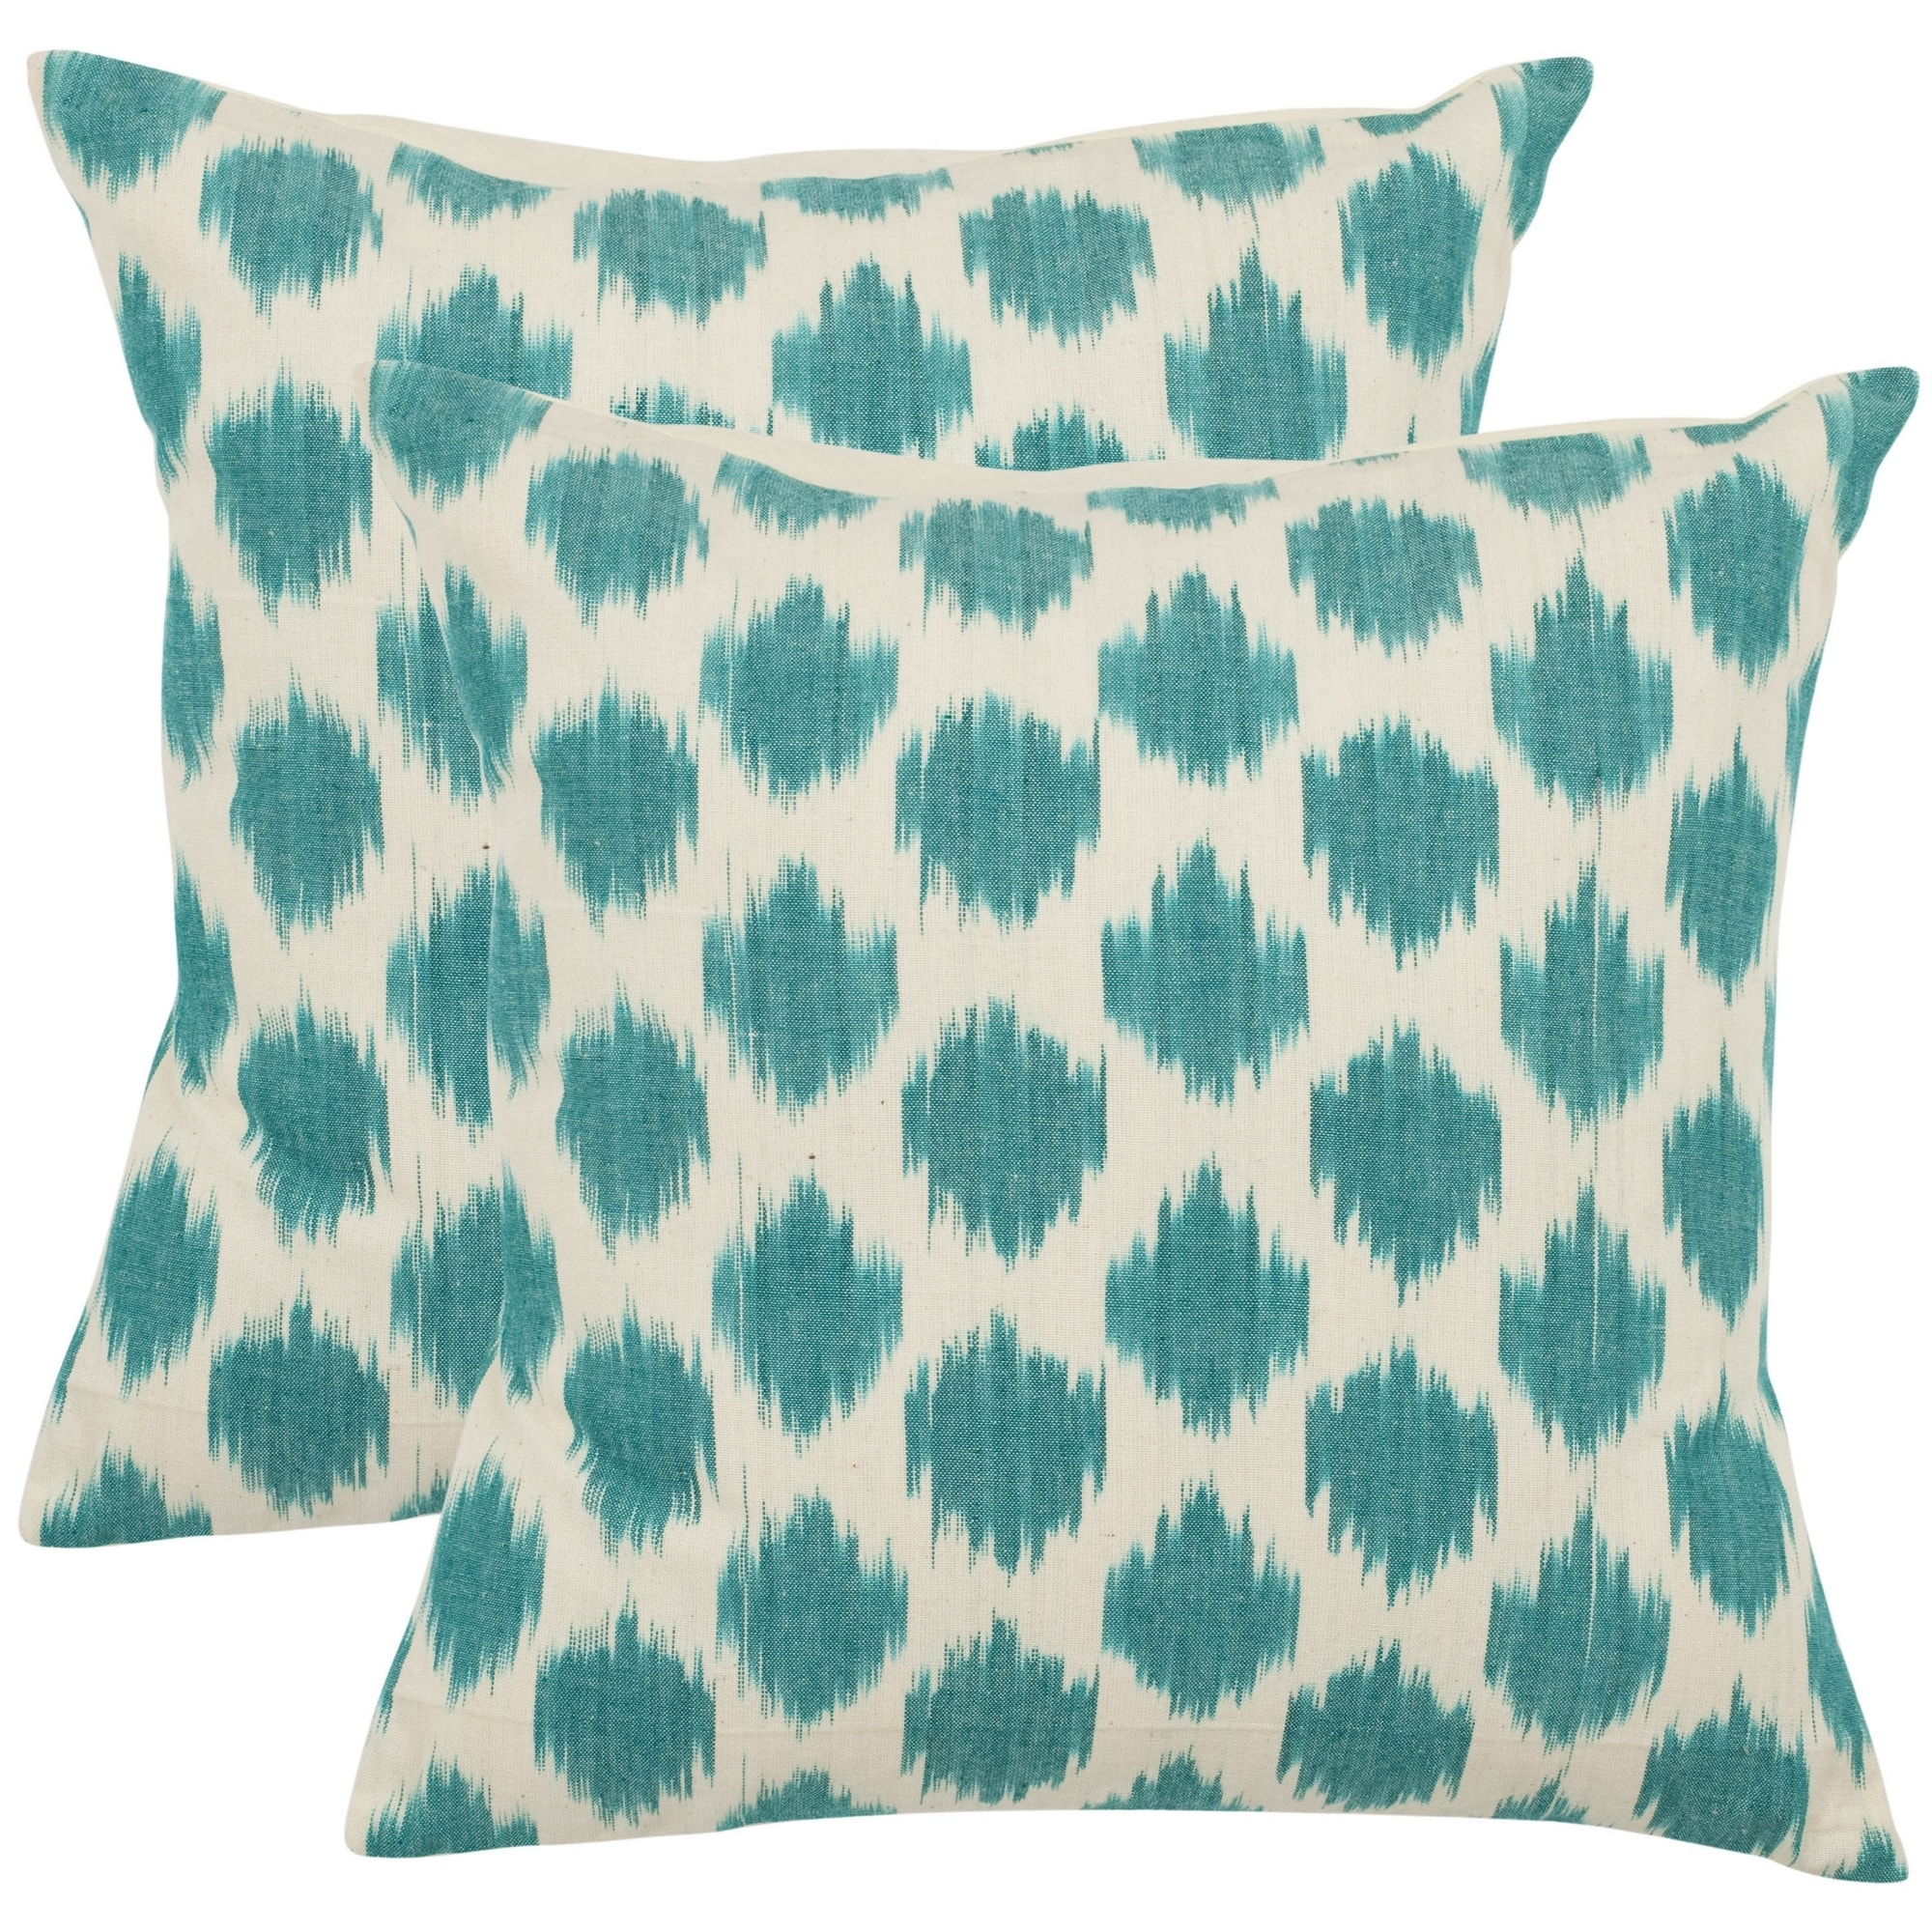 kemble pillows bleecker celerie cover il fullxfull pillow listing zoom blue peacock decorative